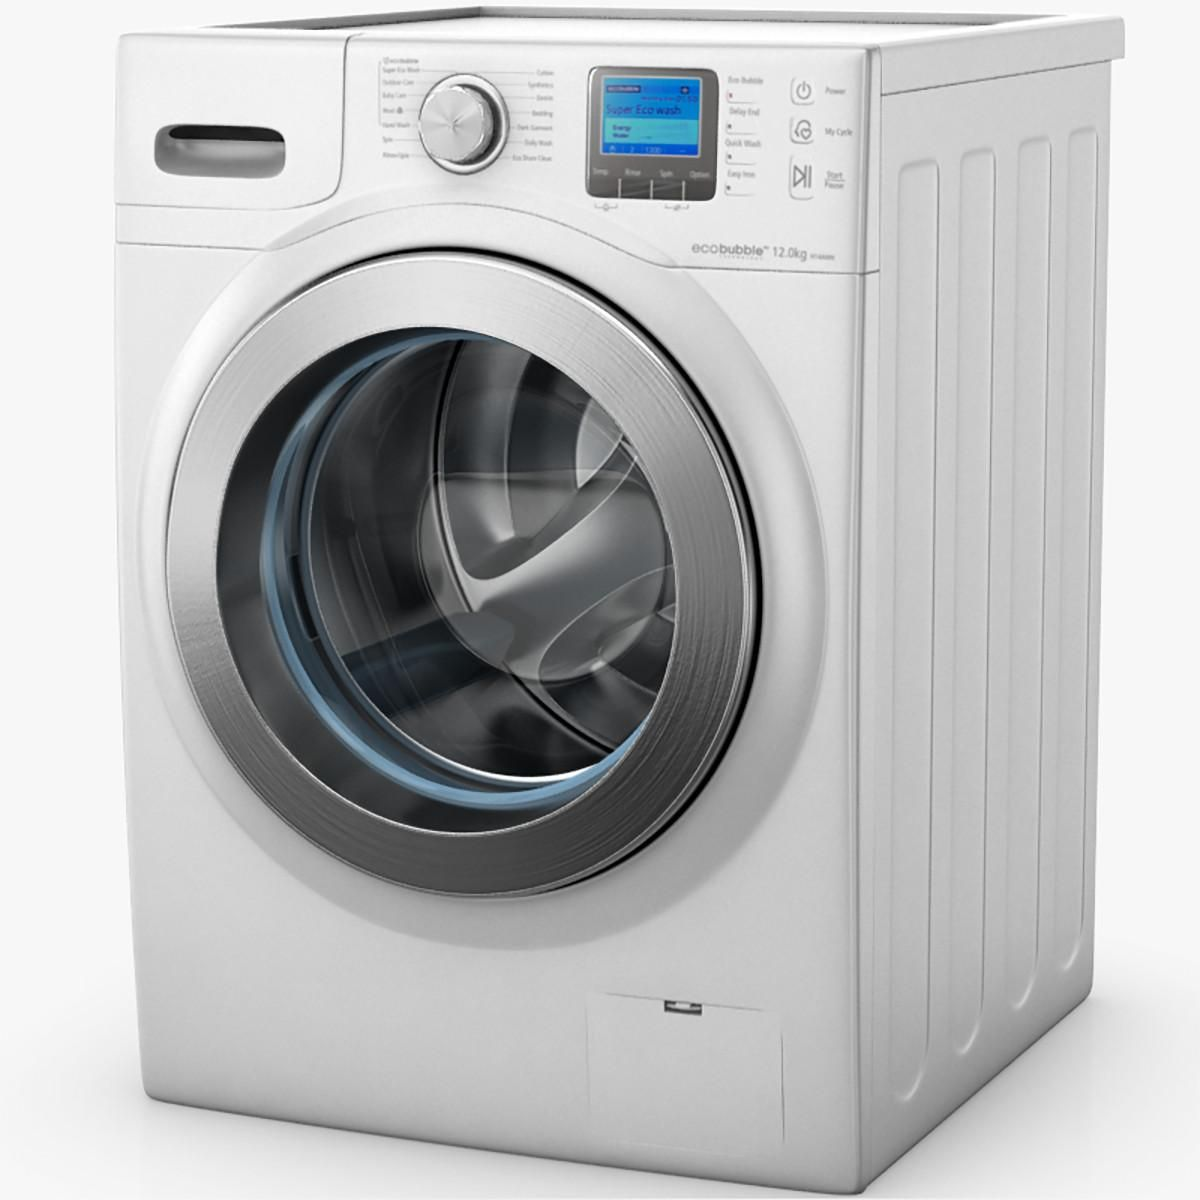 Samsung Ecobubble Washing Machine 3d Model Ad Ecobubble Samsung